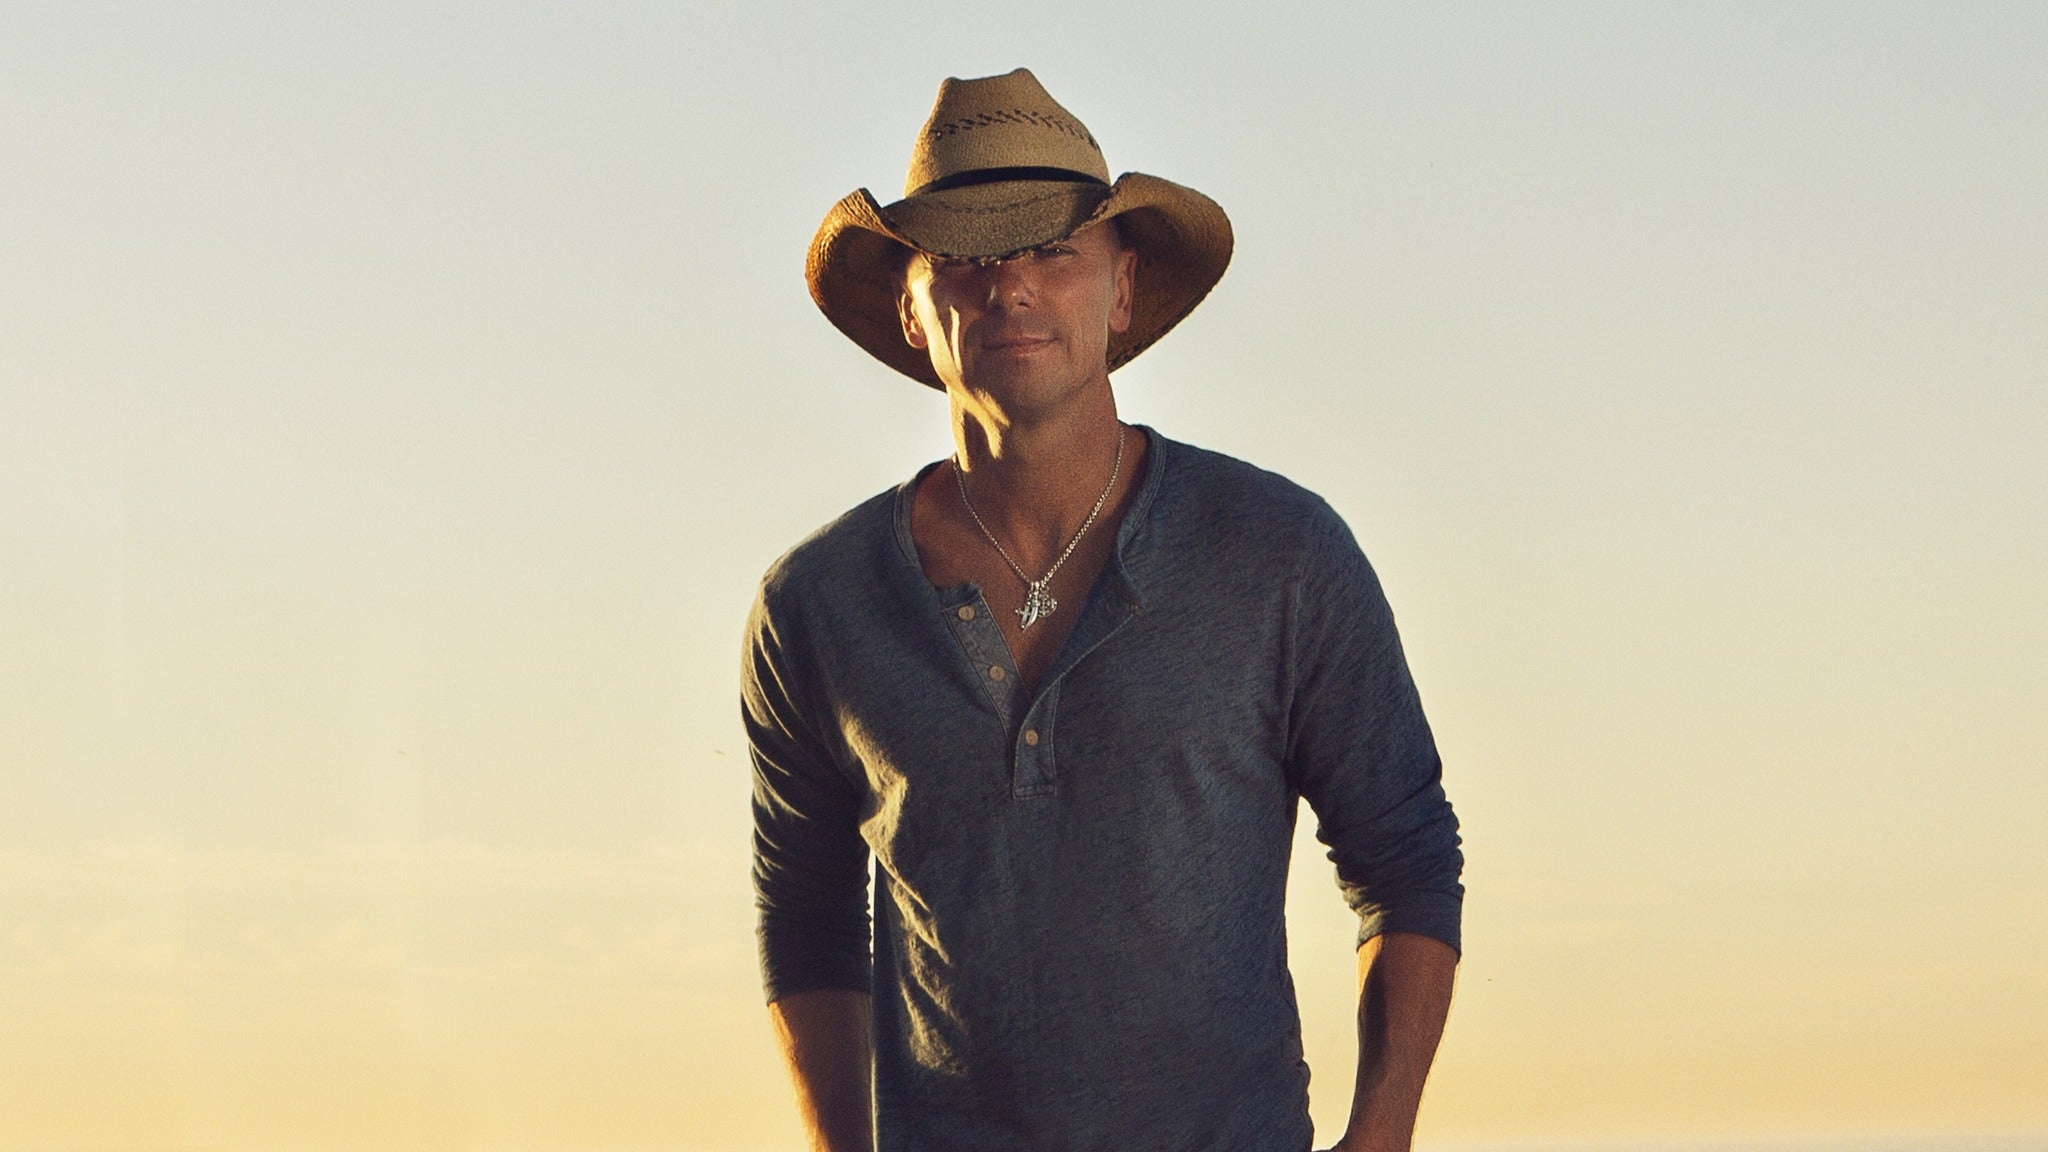 Kenny Chesney Trip Around the Sun Tour 2018